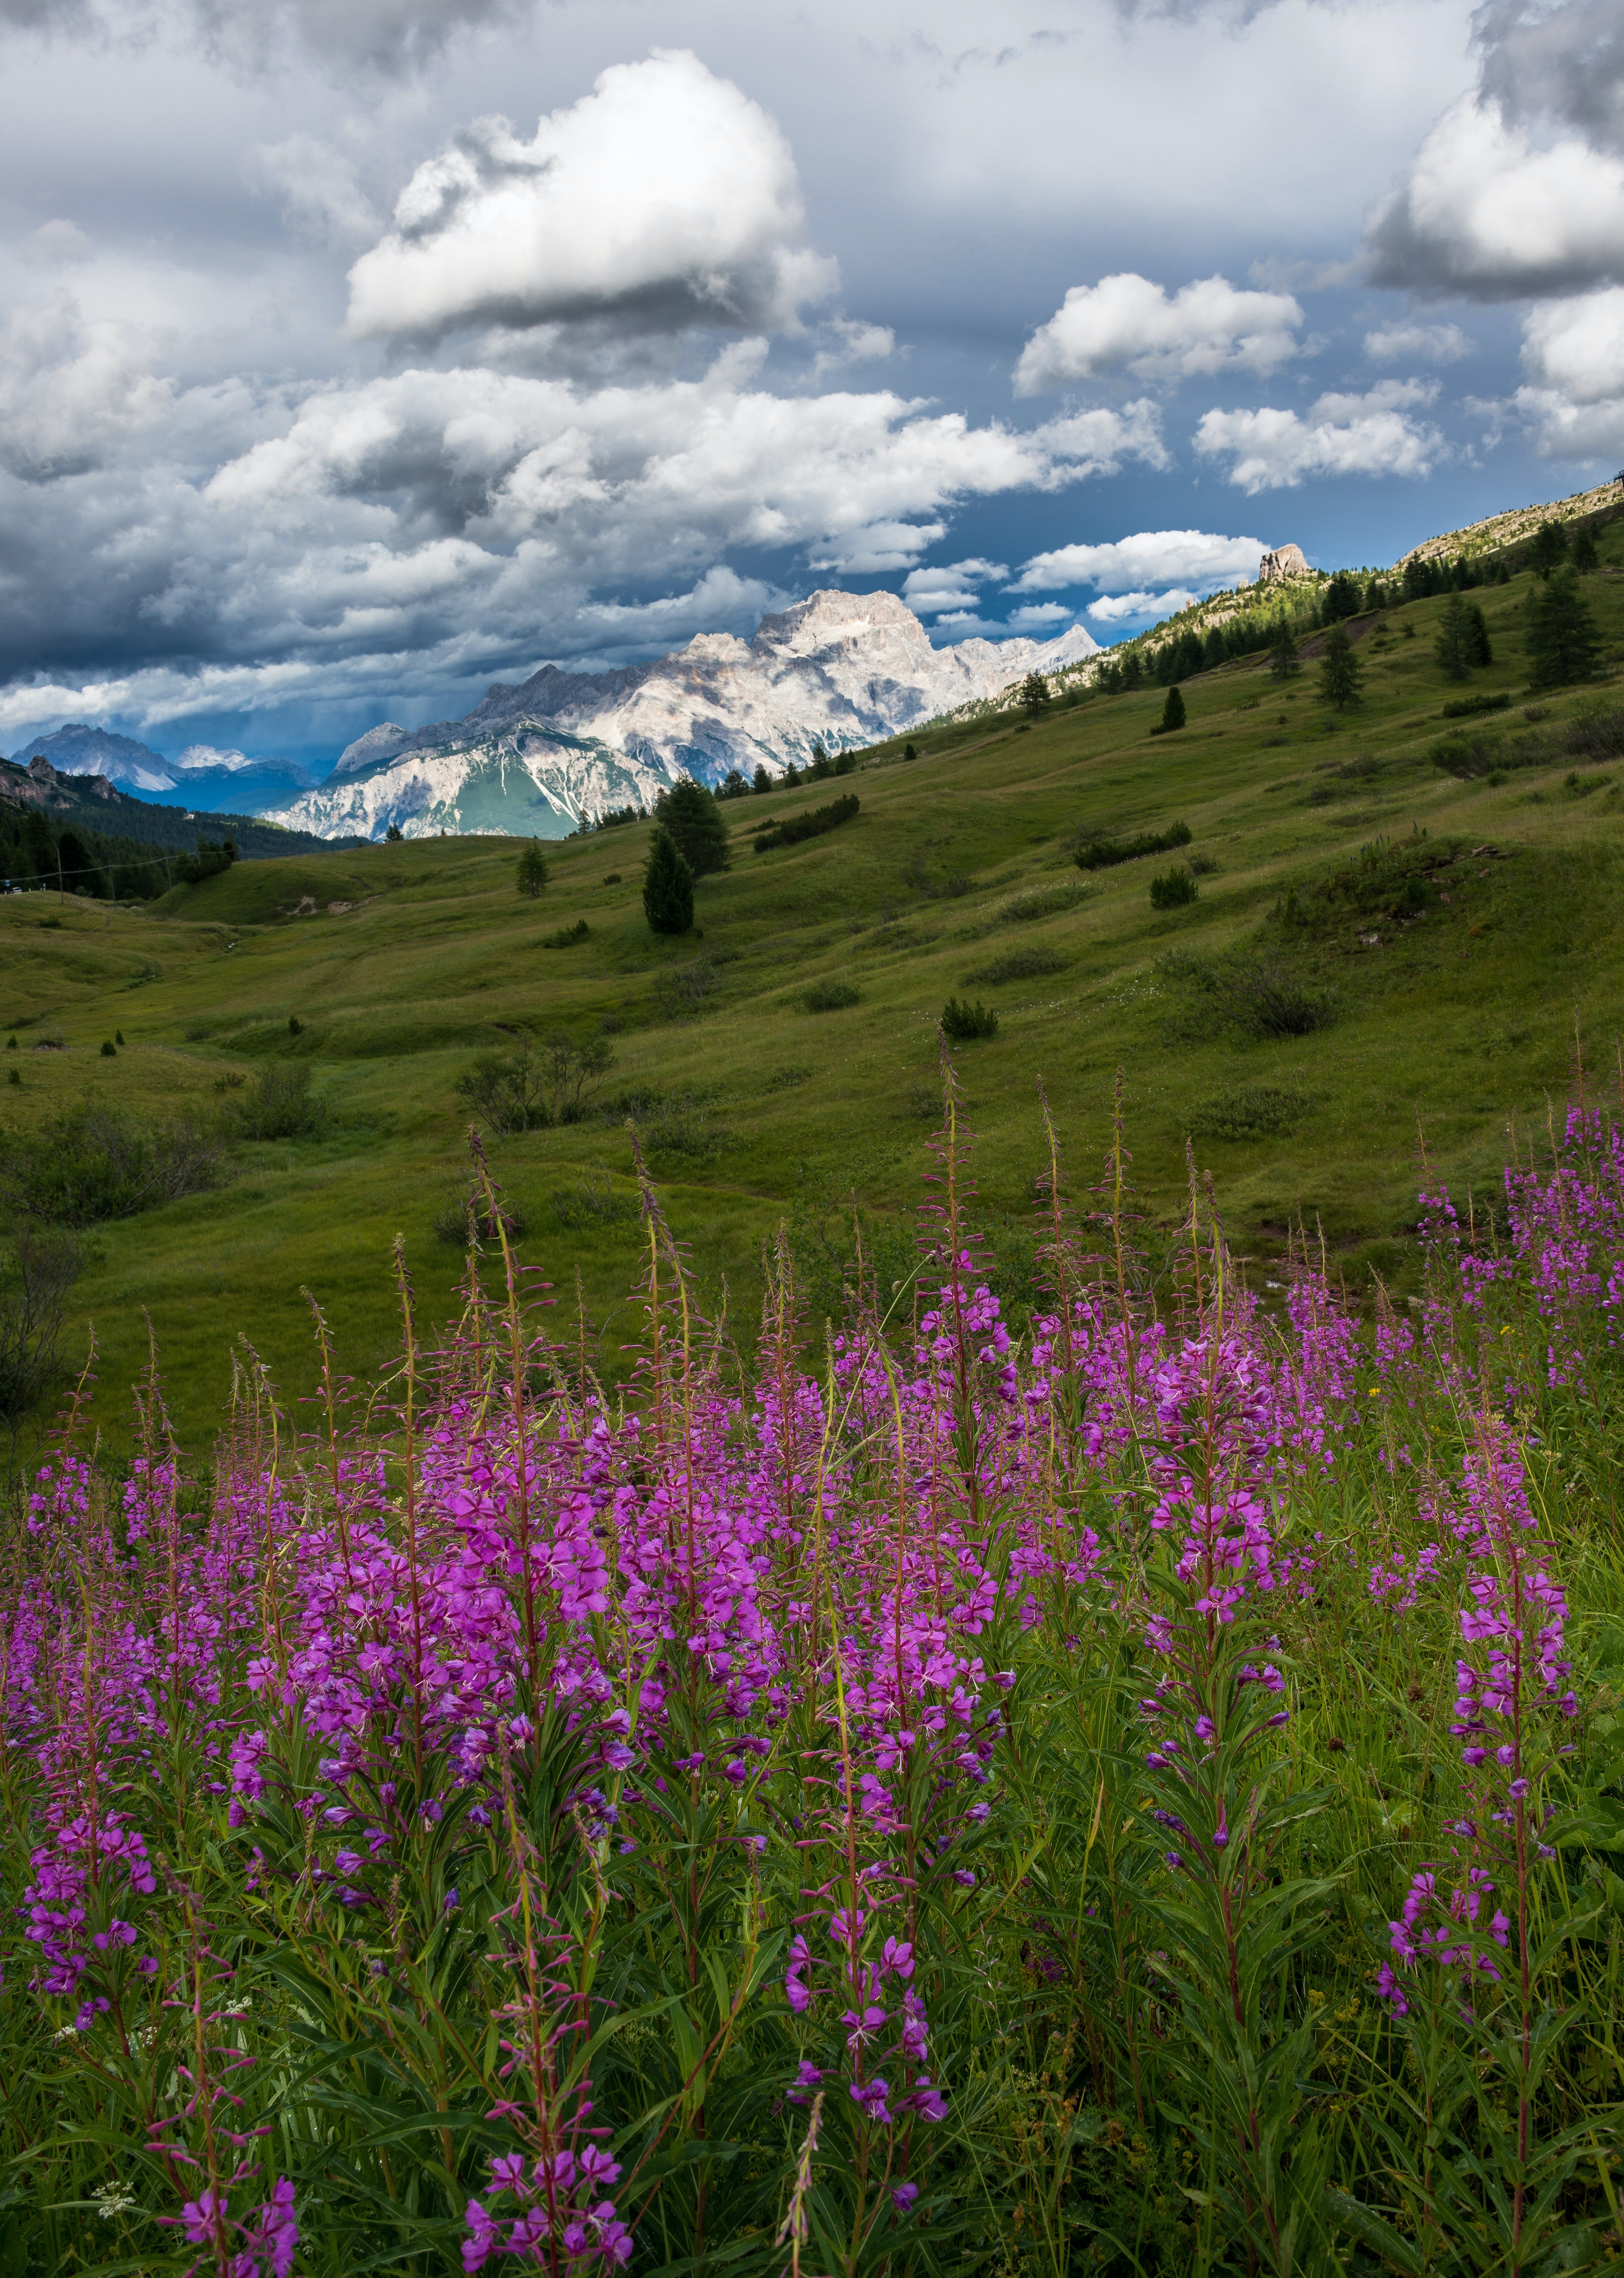 Landscape photograph of mountain and purple flowers